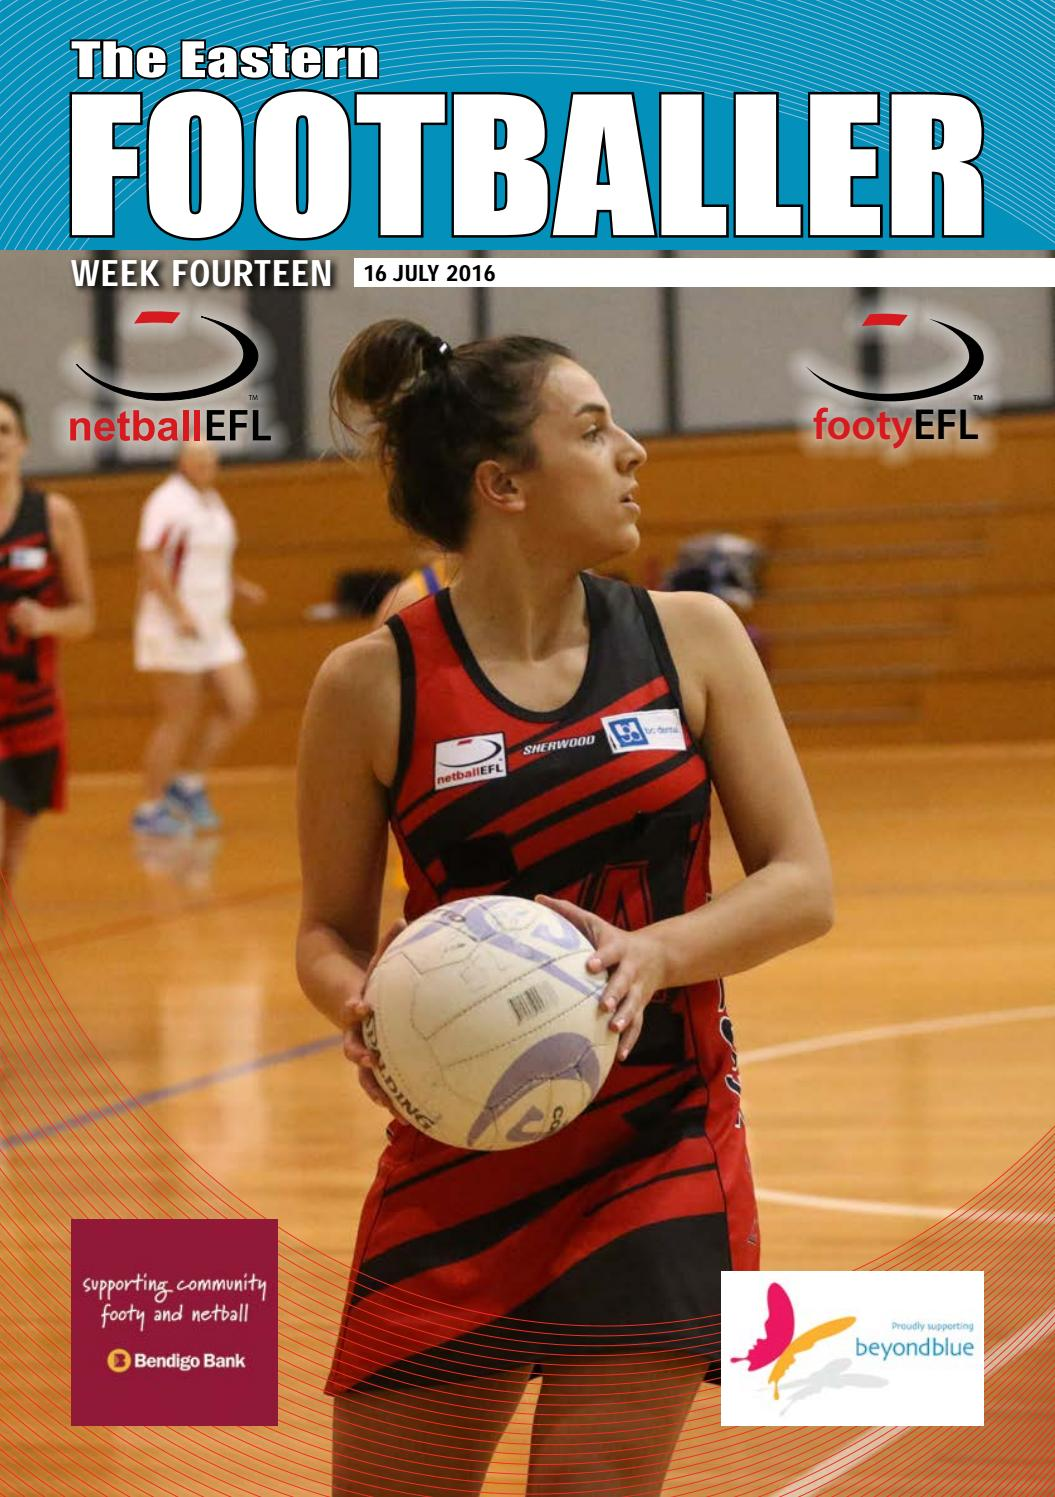 The Eastern Footballer Week 14 By Football League Issuu Little Things She Needs Chinny 6l Navy Tsn0001299c0035 38